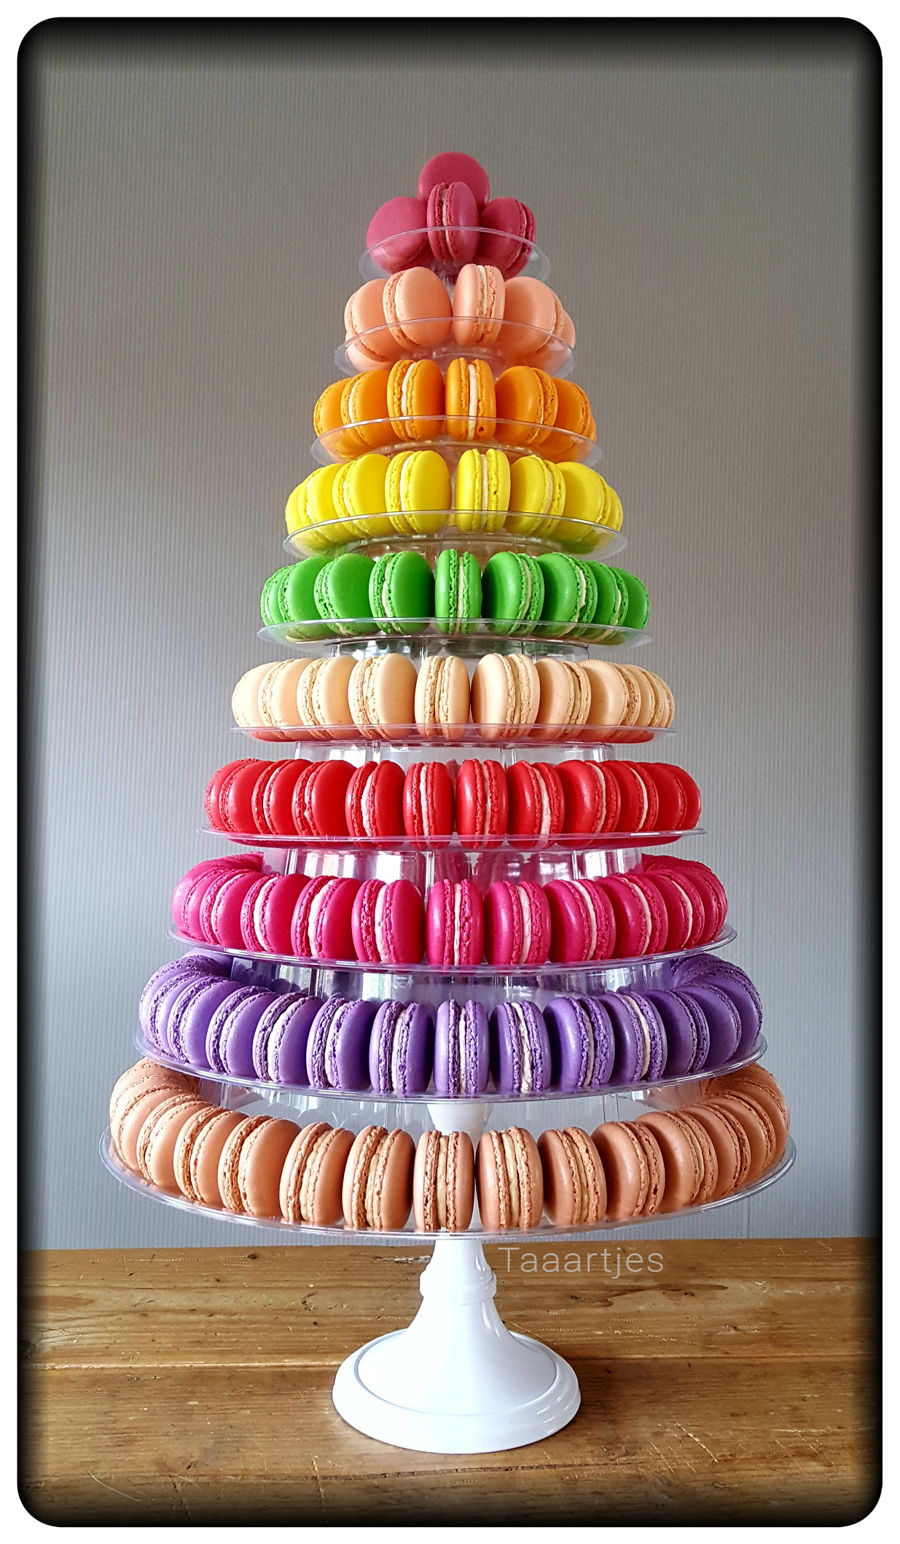 Macarontower on Cake Central